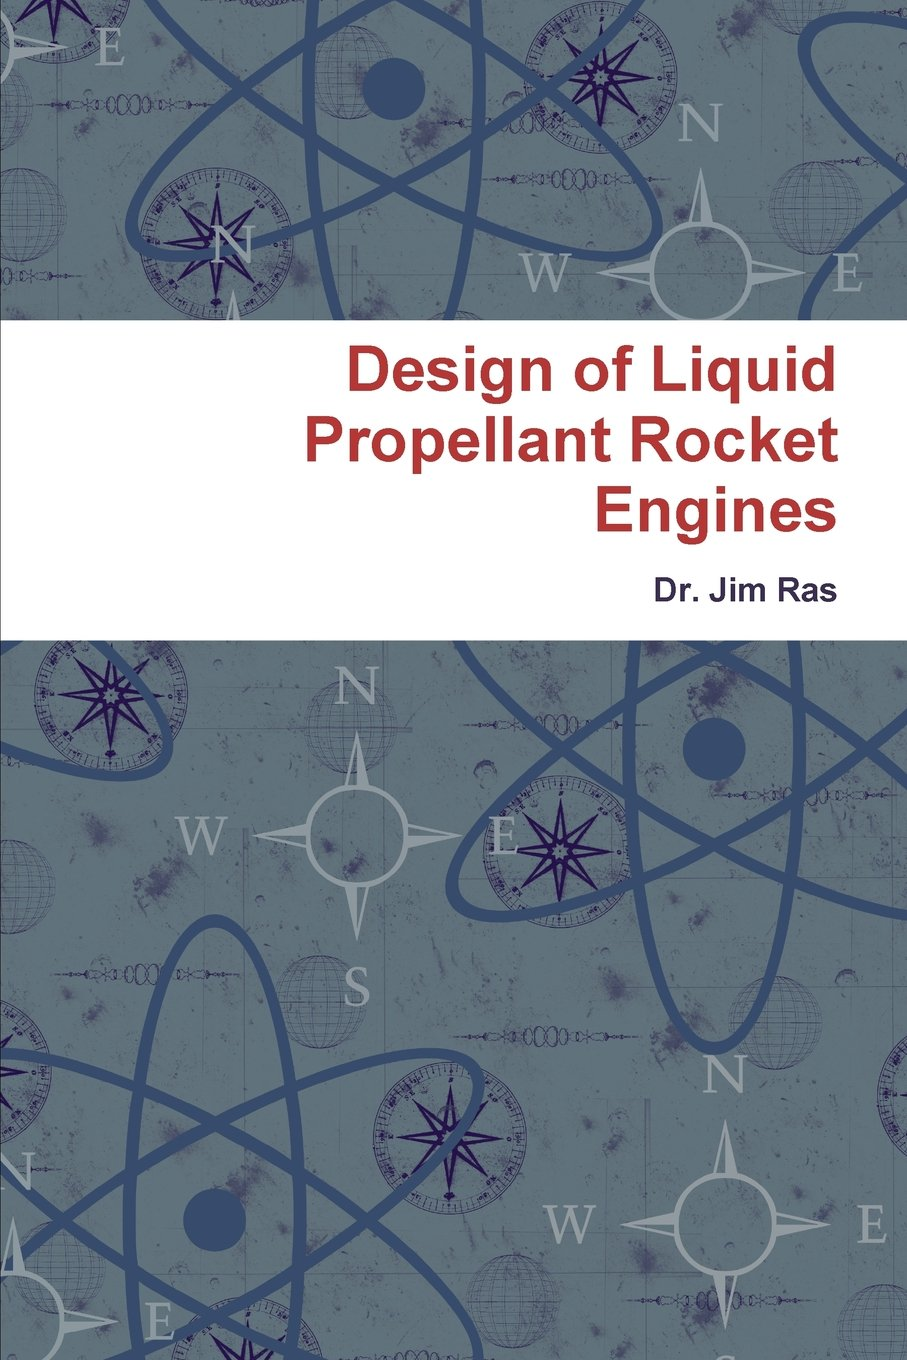 Design Of Liquid Propellant Rocket Engines Ras Dr Jim 9781365409332 Amazon Com Books